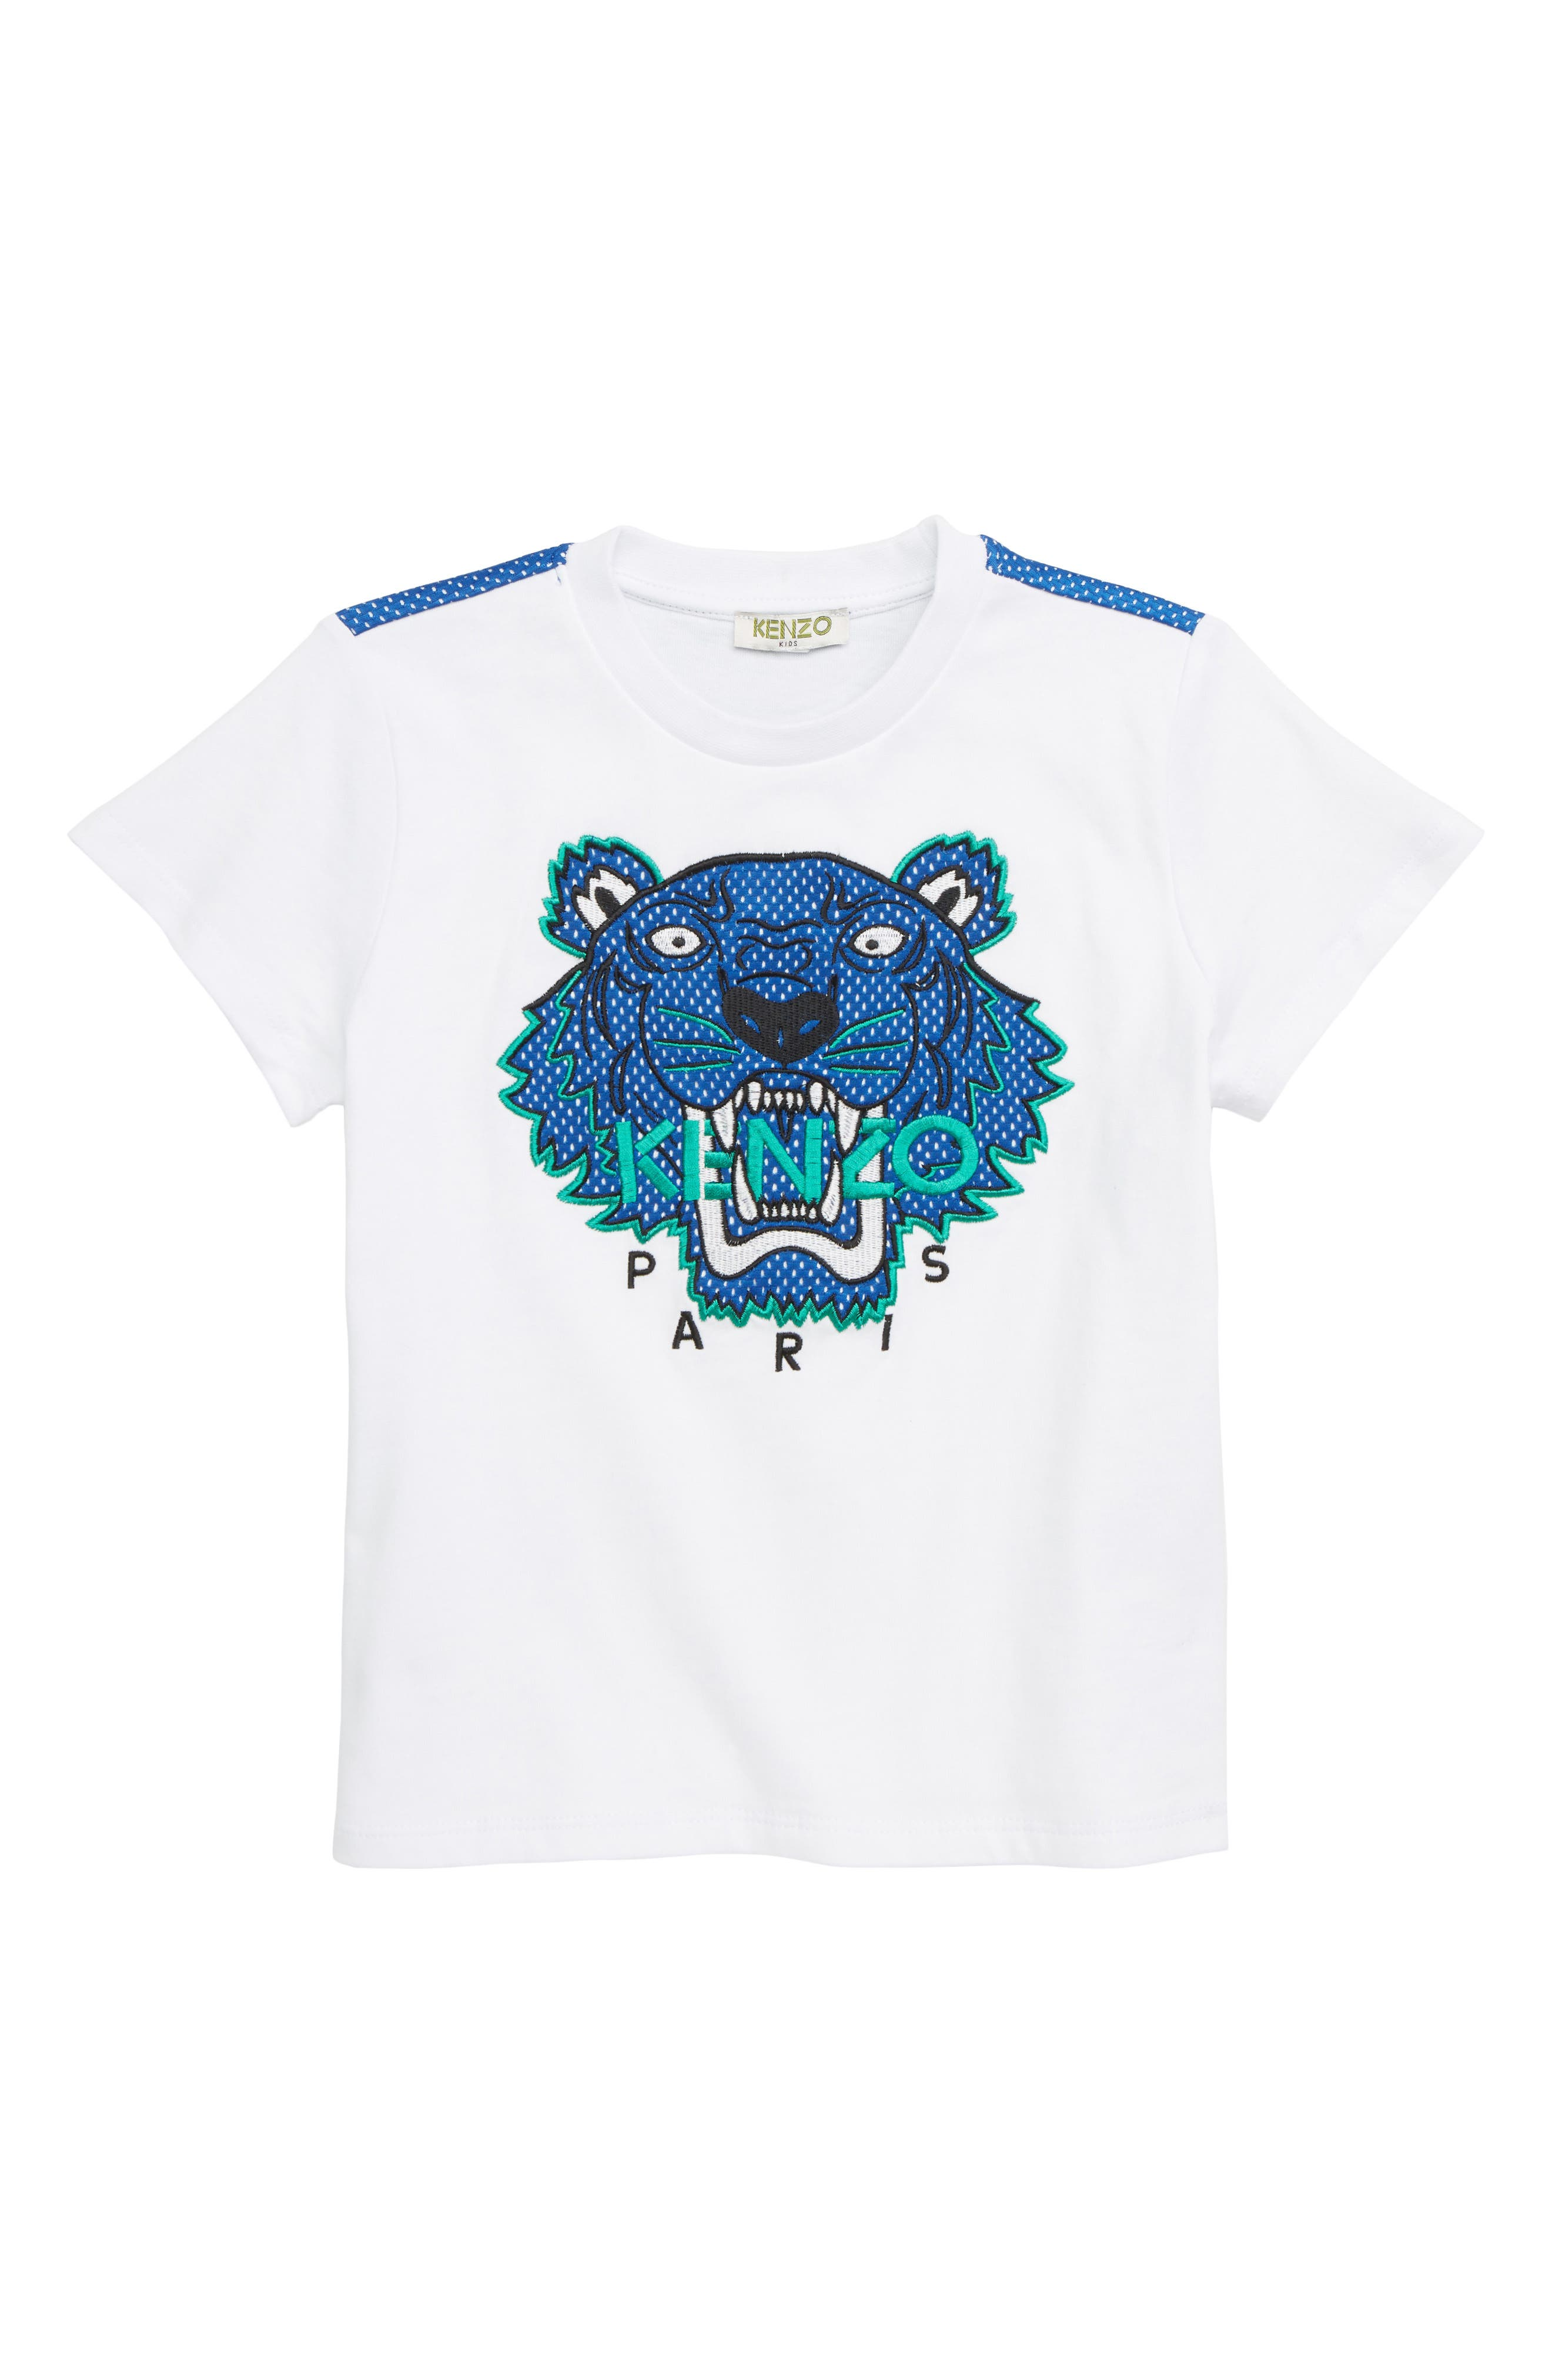 KENZO, Embroidered Tiger T-Shirt, Main thumbnail 1, color, WHITE